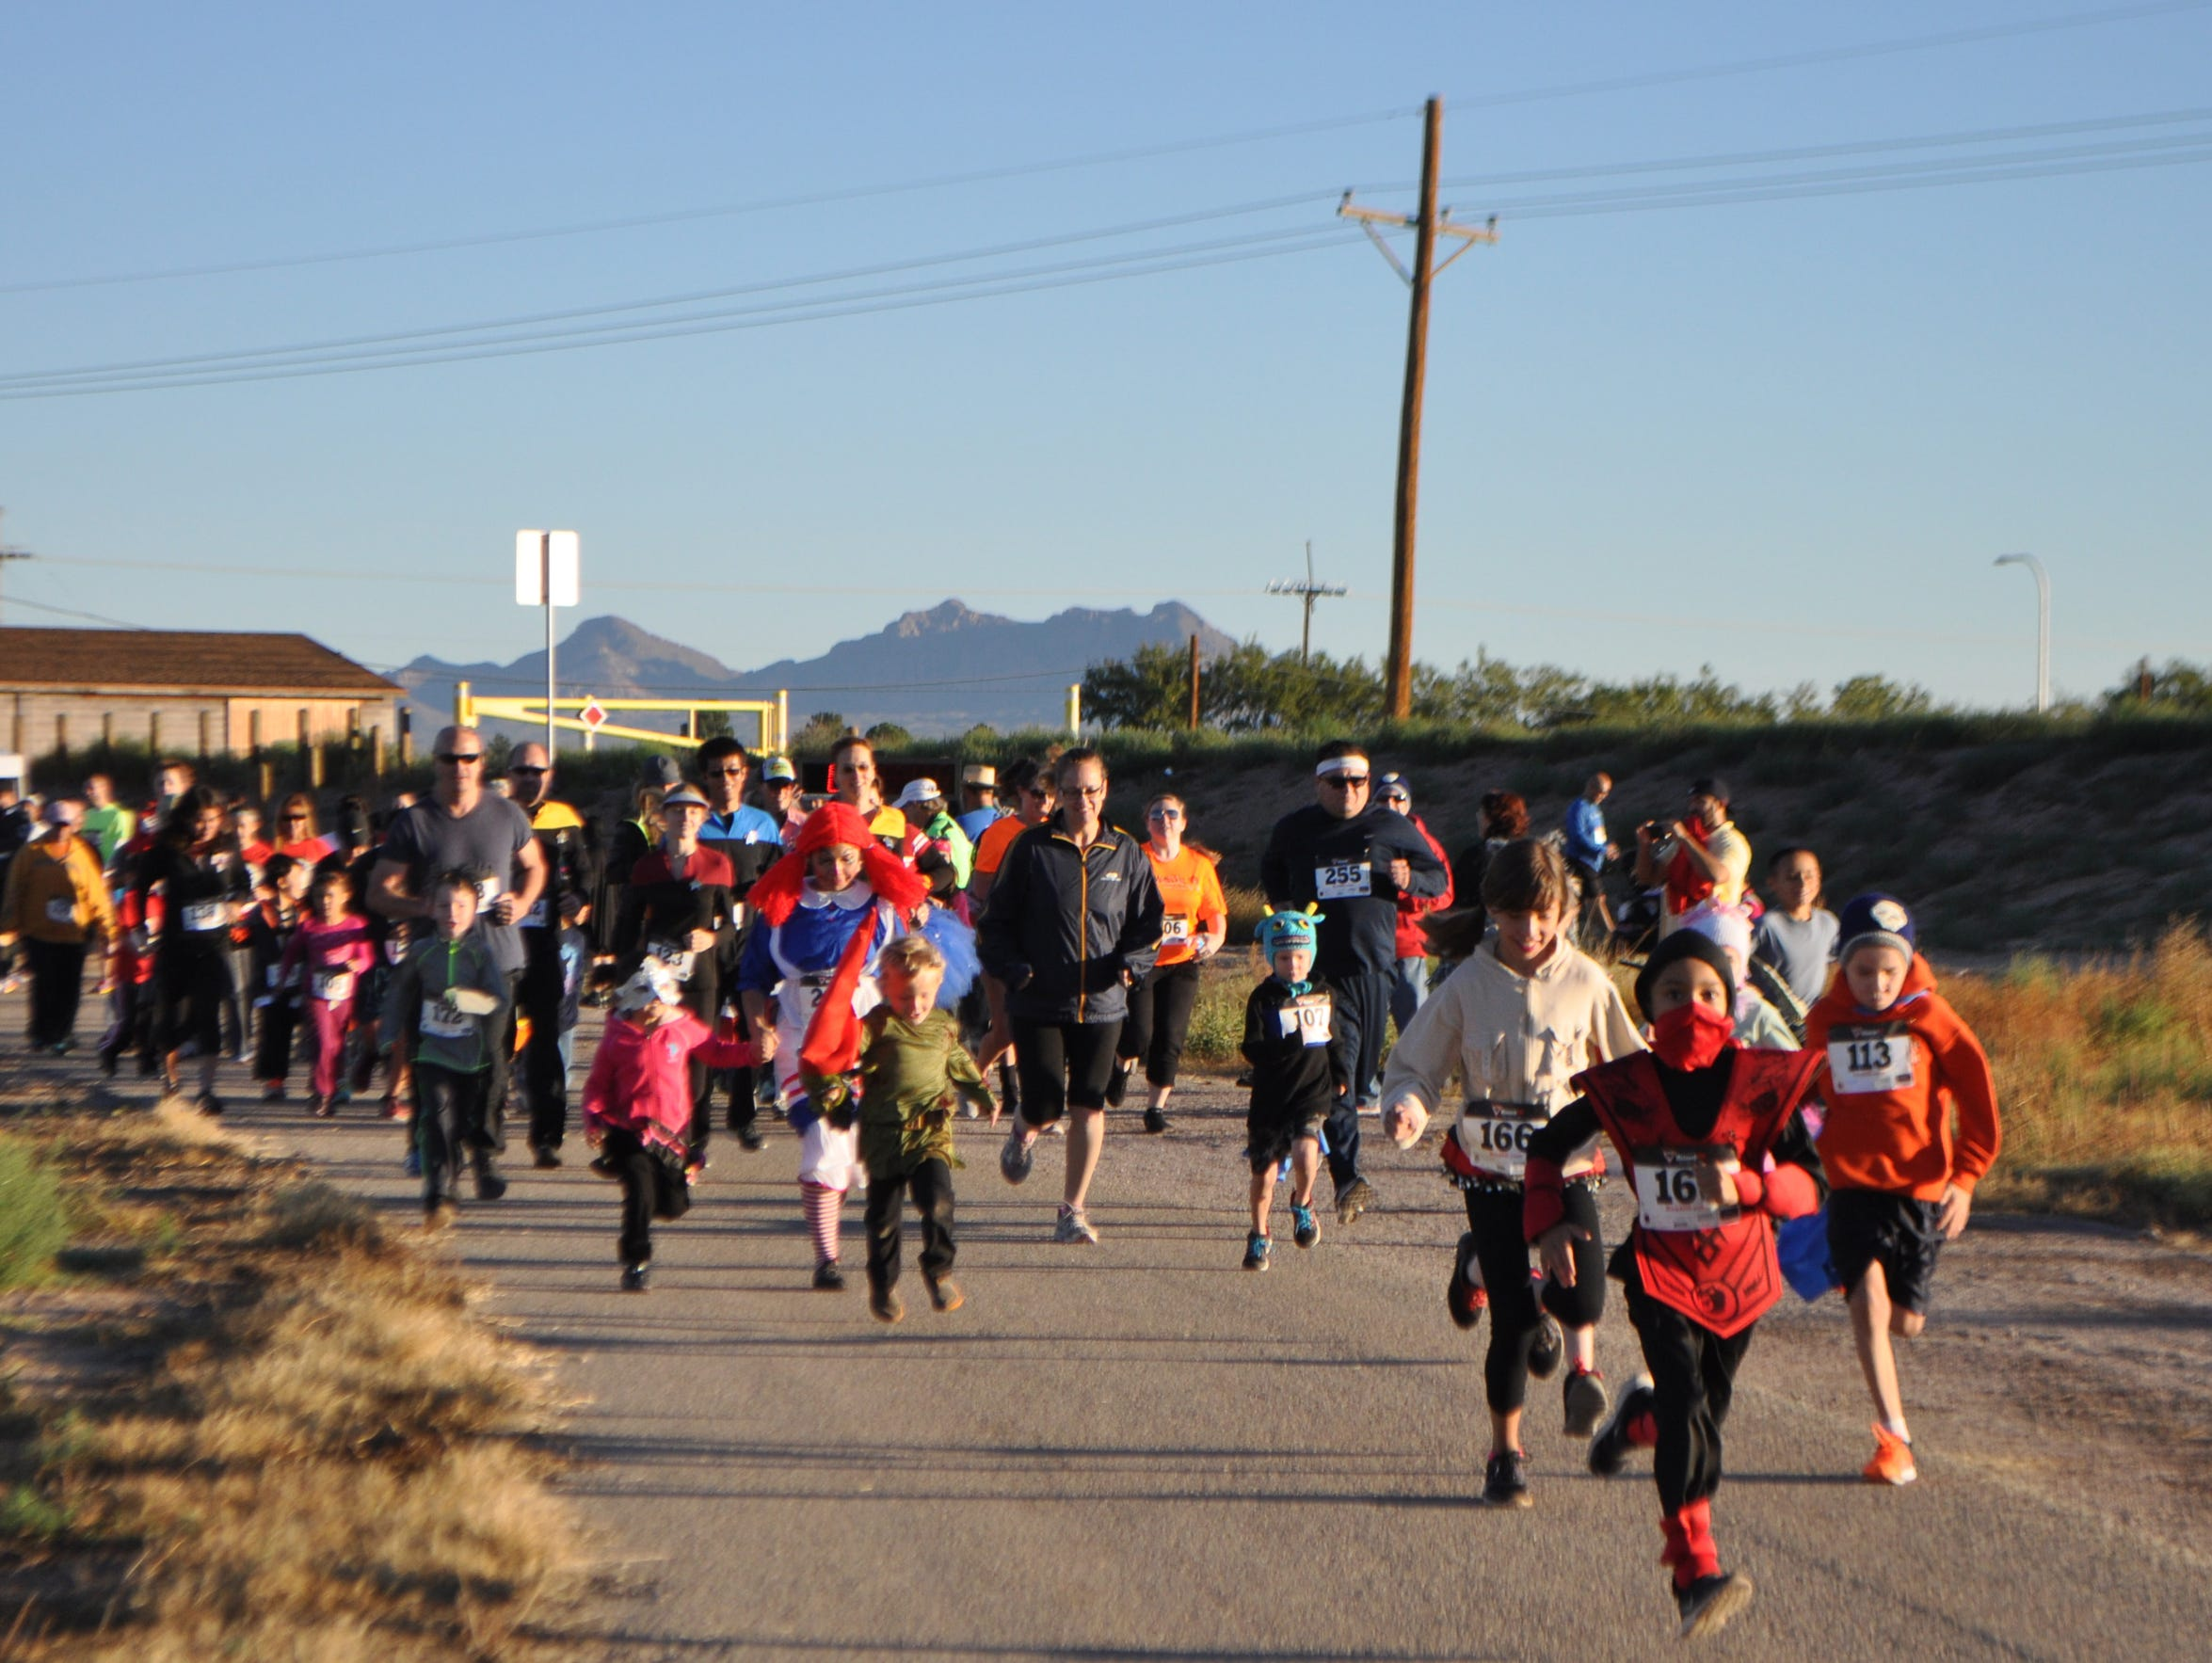 Adults and children participate in the 2014 Las Cruces